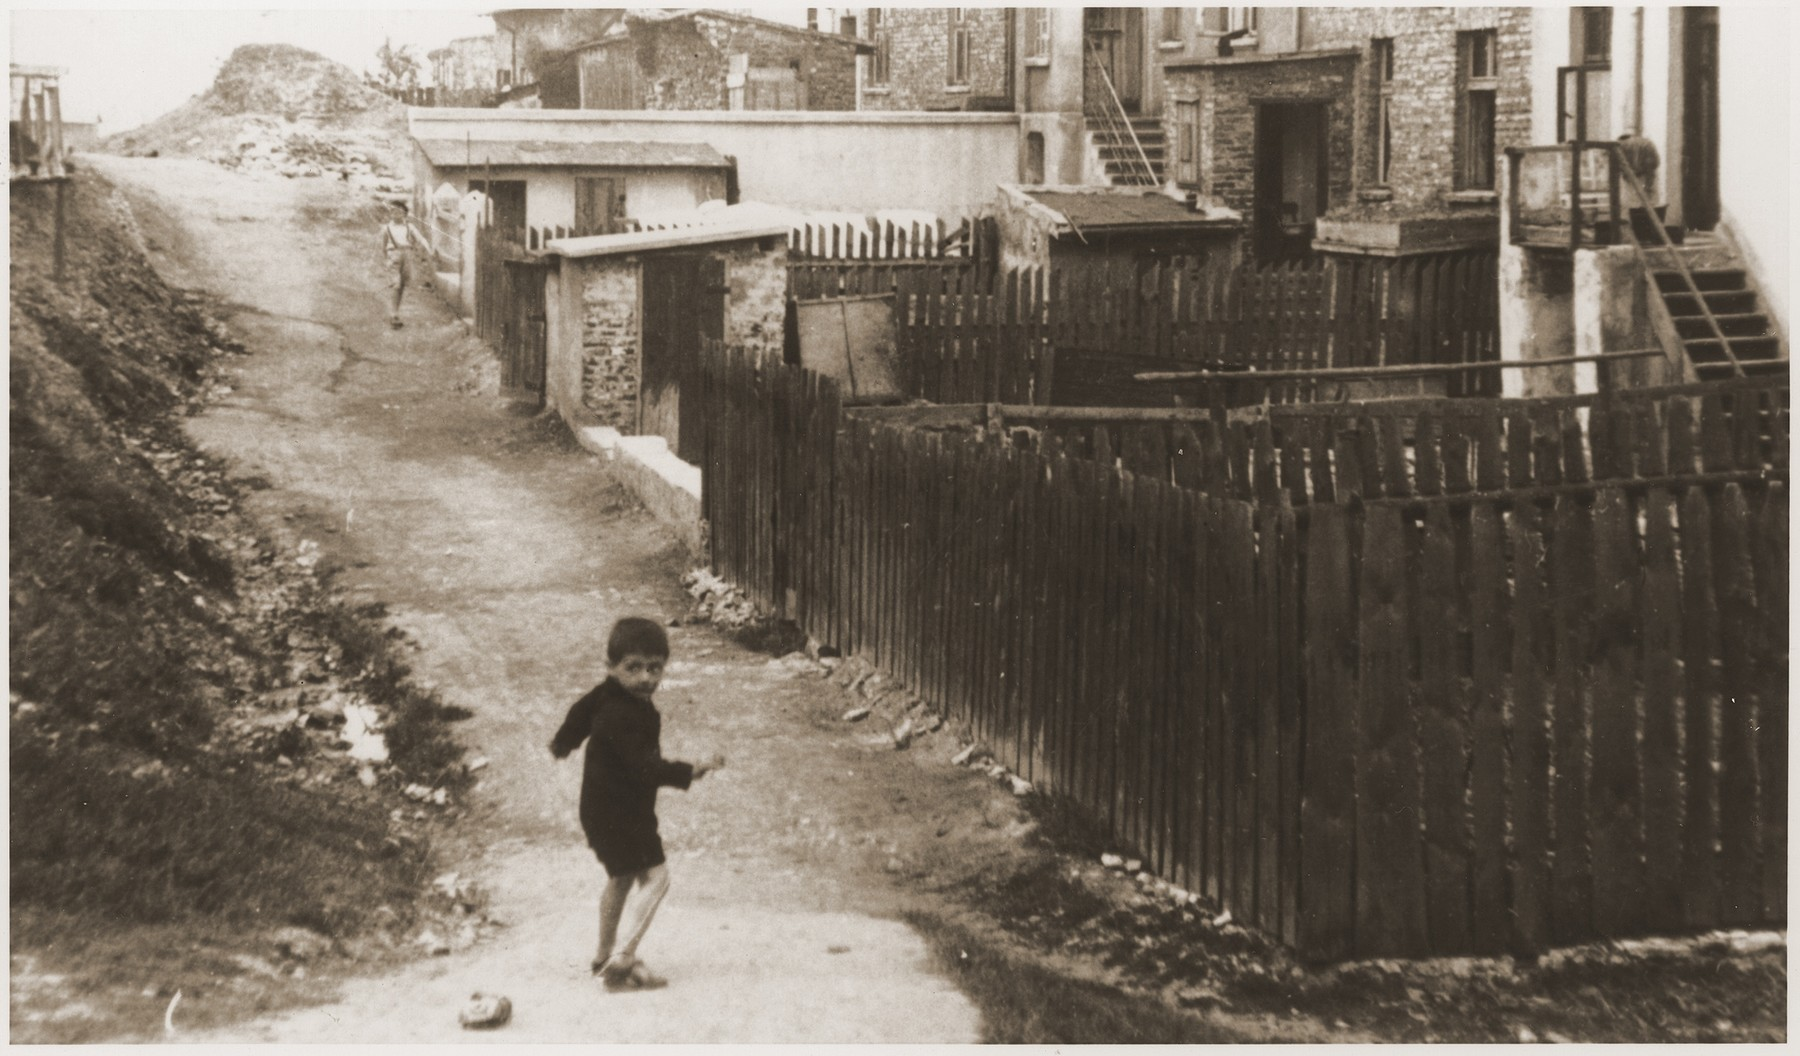 A Jewish boy walking in the back alley in the Bedzin ghetto.